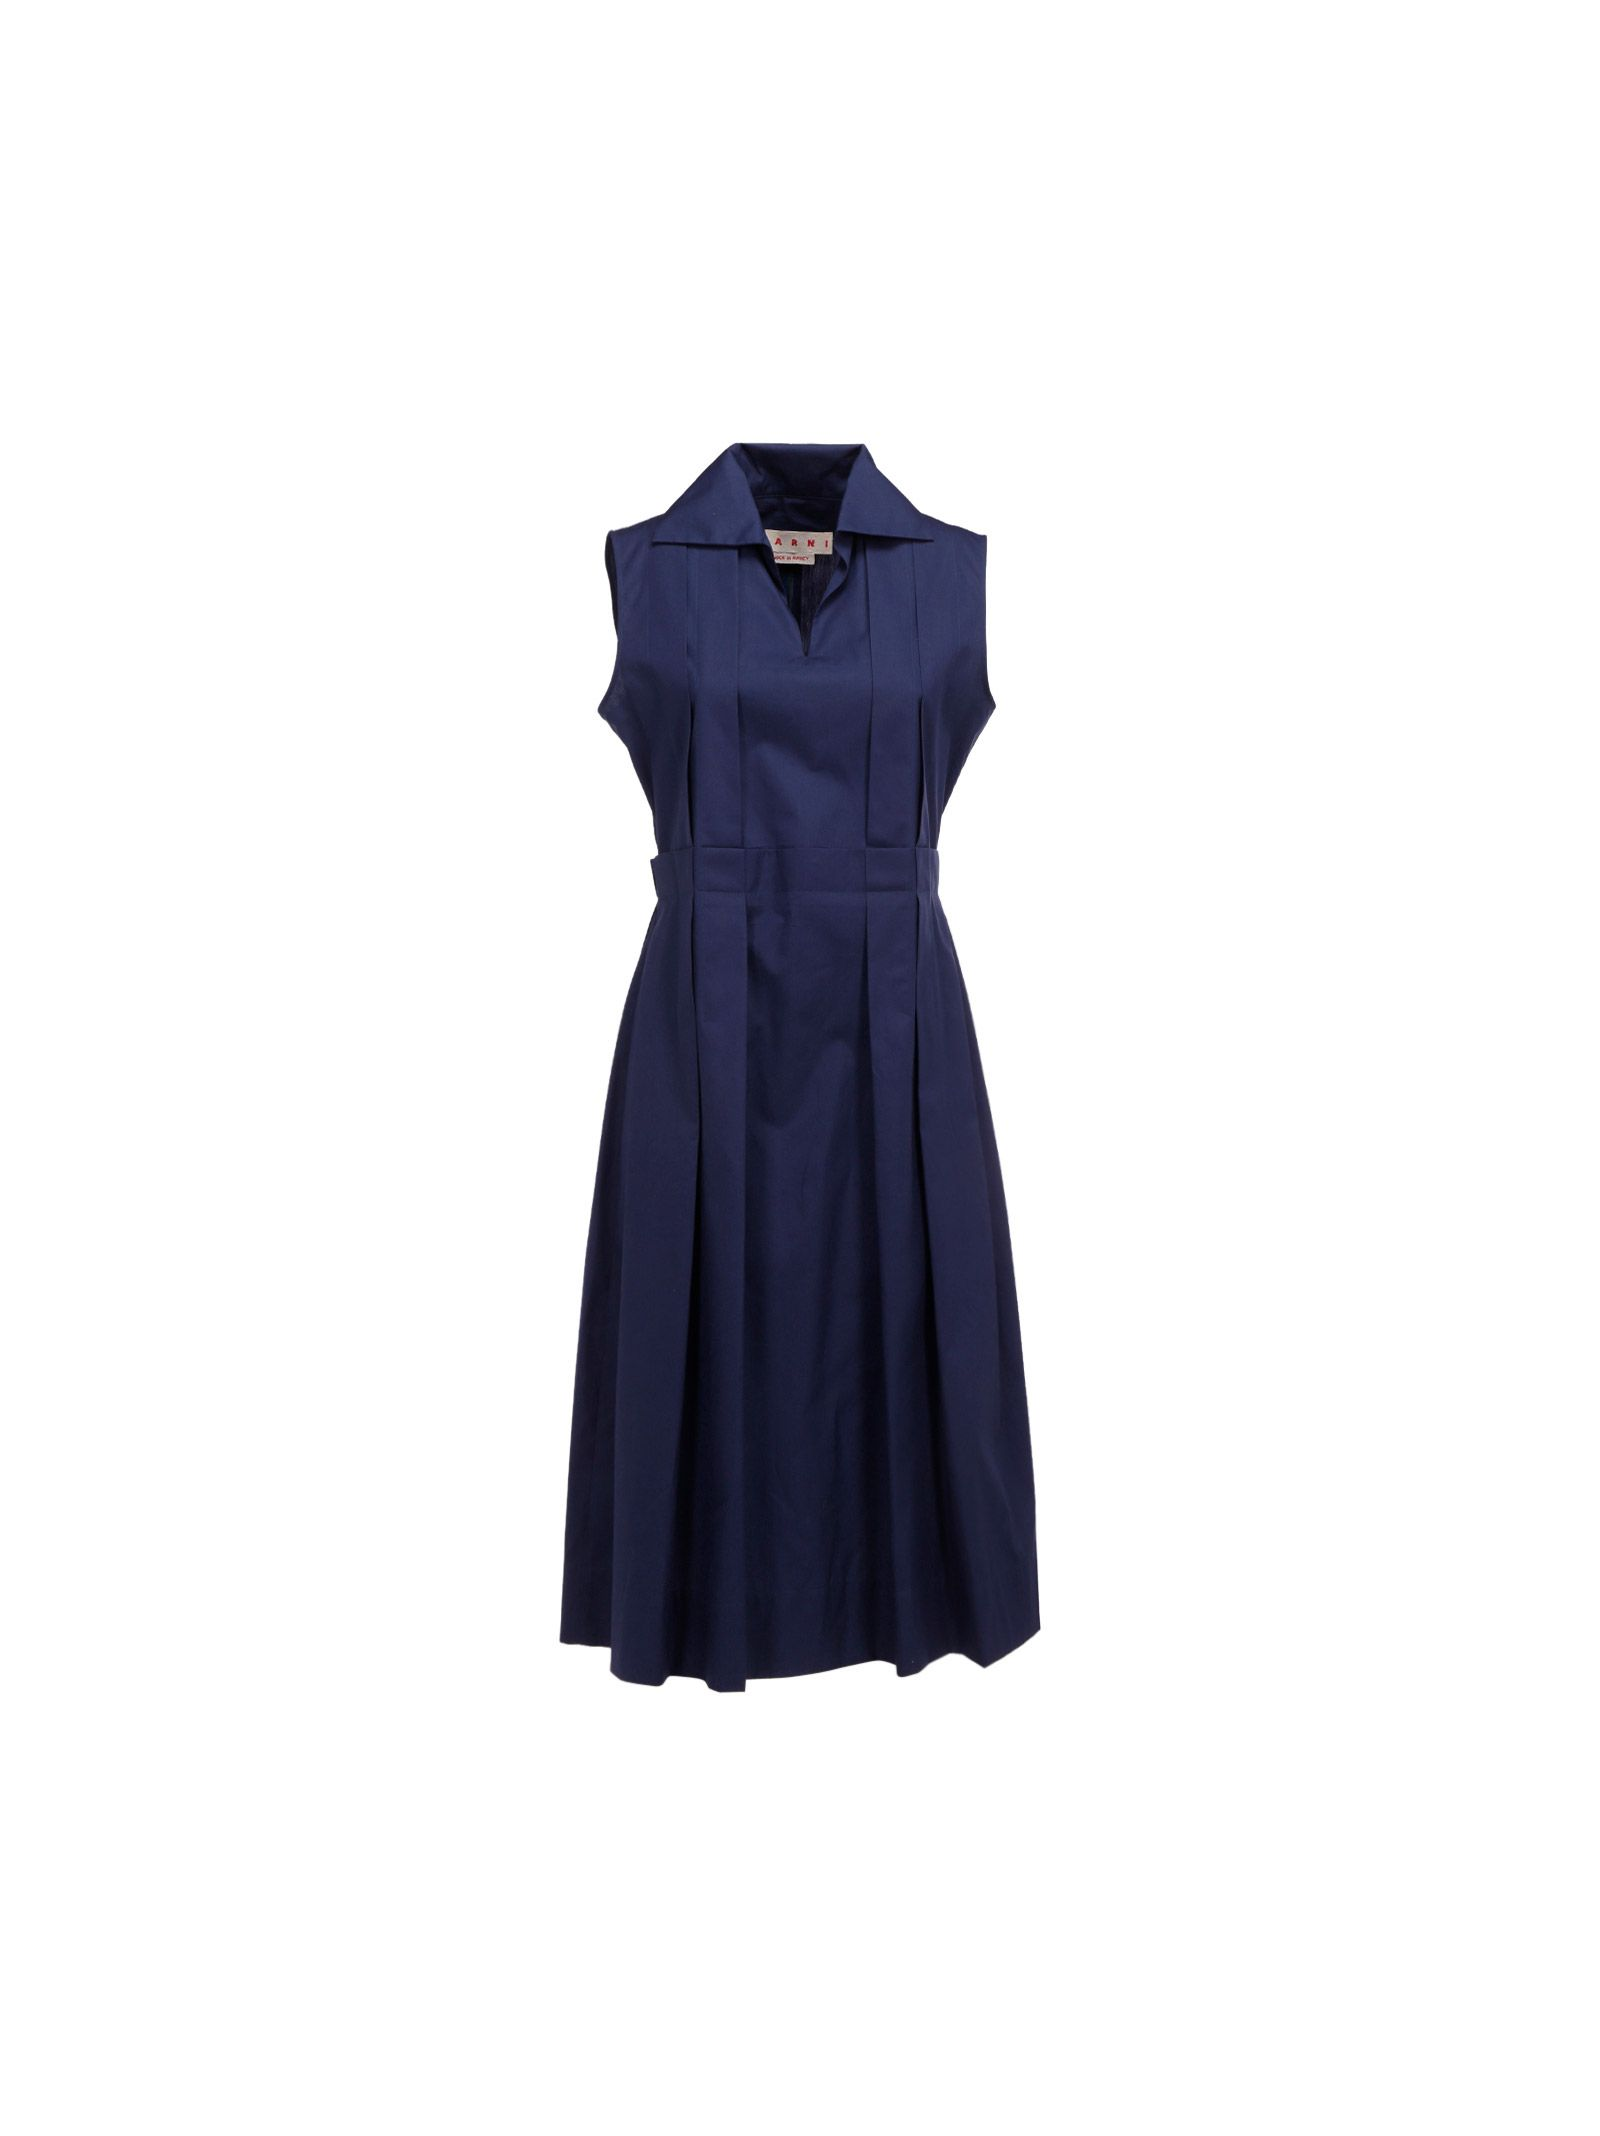 Marni MARNI WOMEN'S BLUE OTHER MATERIALS DRESS